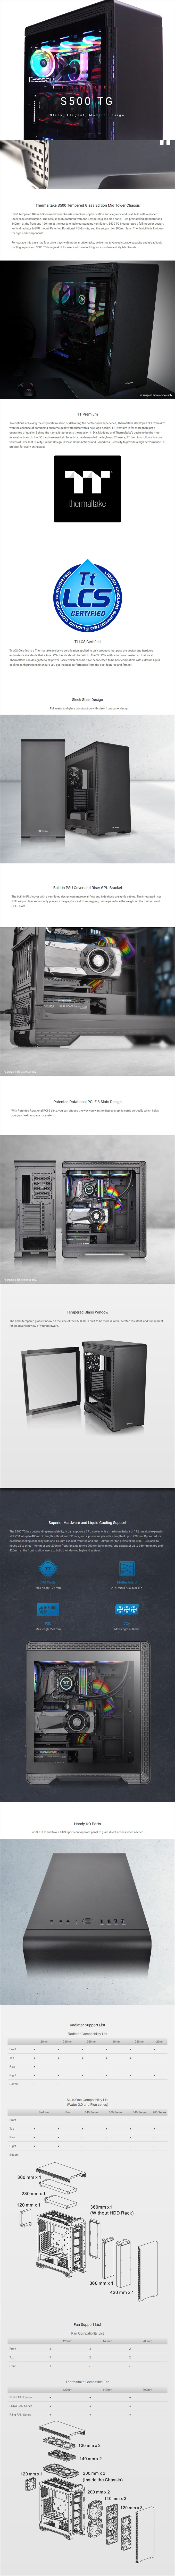 Thermaltake S500 Tempered Glass Mid-Tower ATX Case - Black - Overview 1